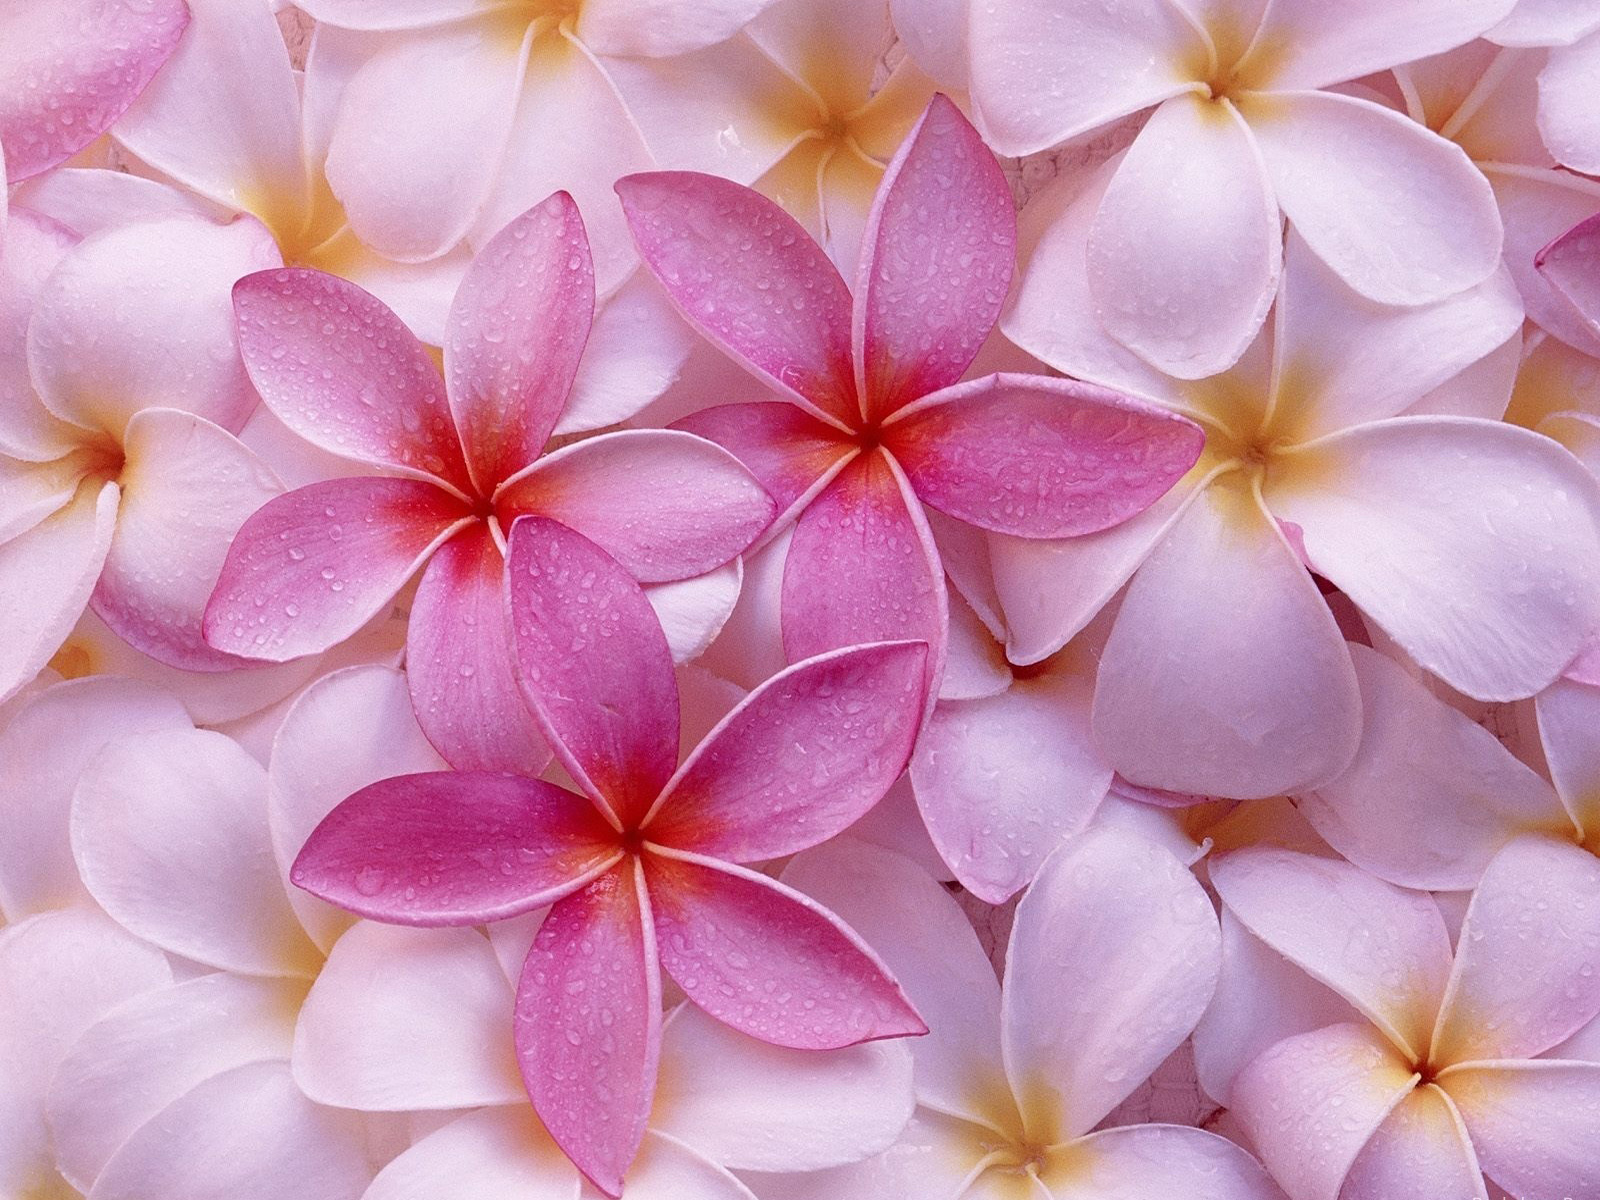 Light Pink Flowers Wallpaper 1600x1200 78283